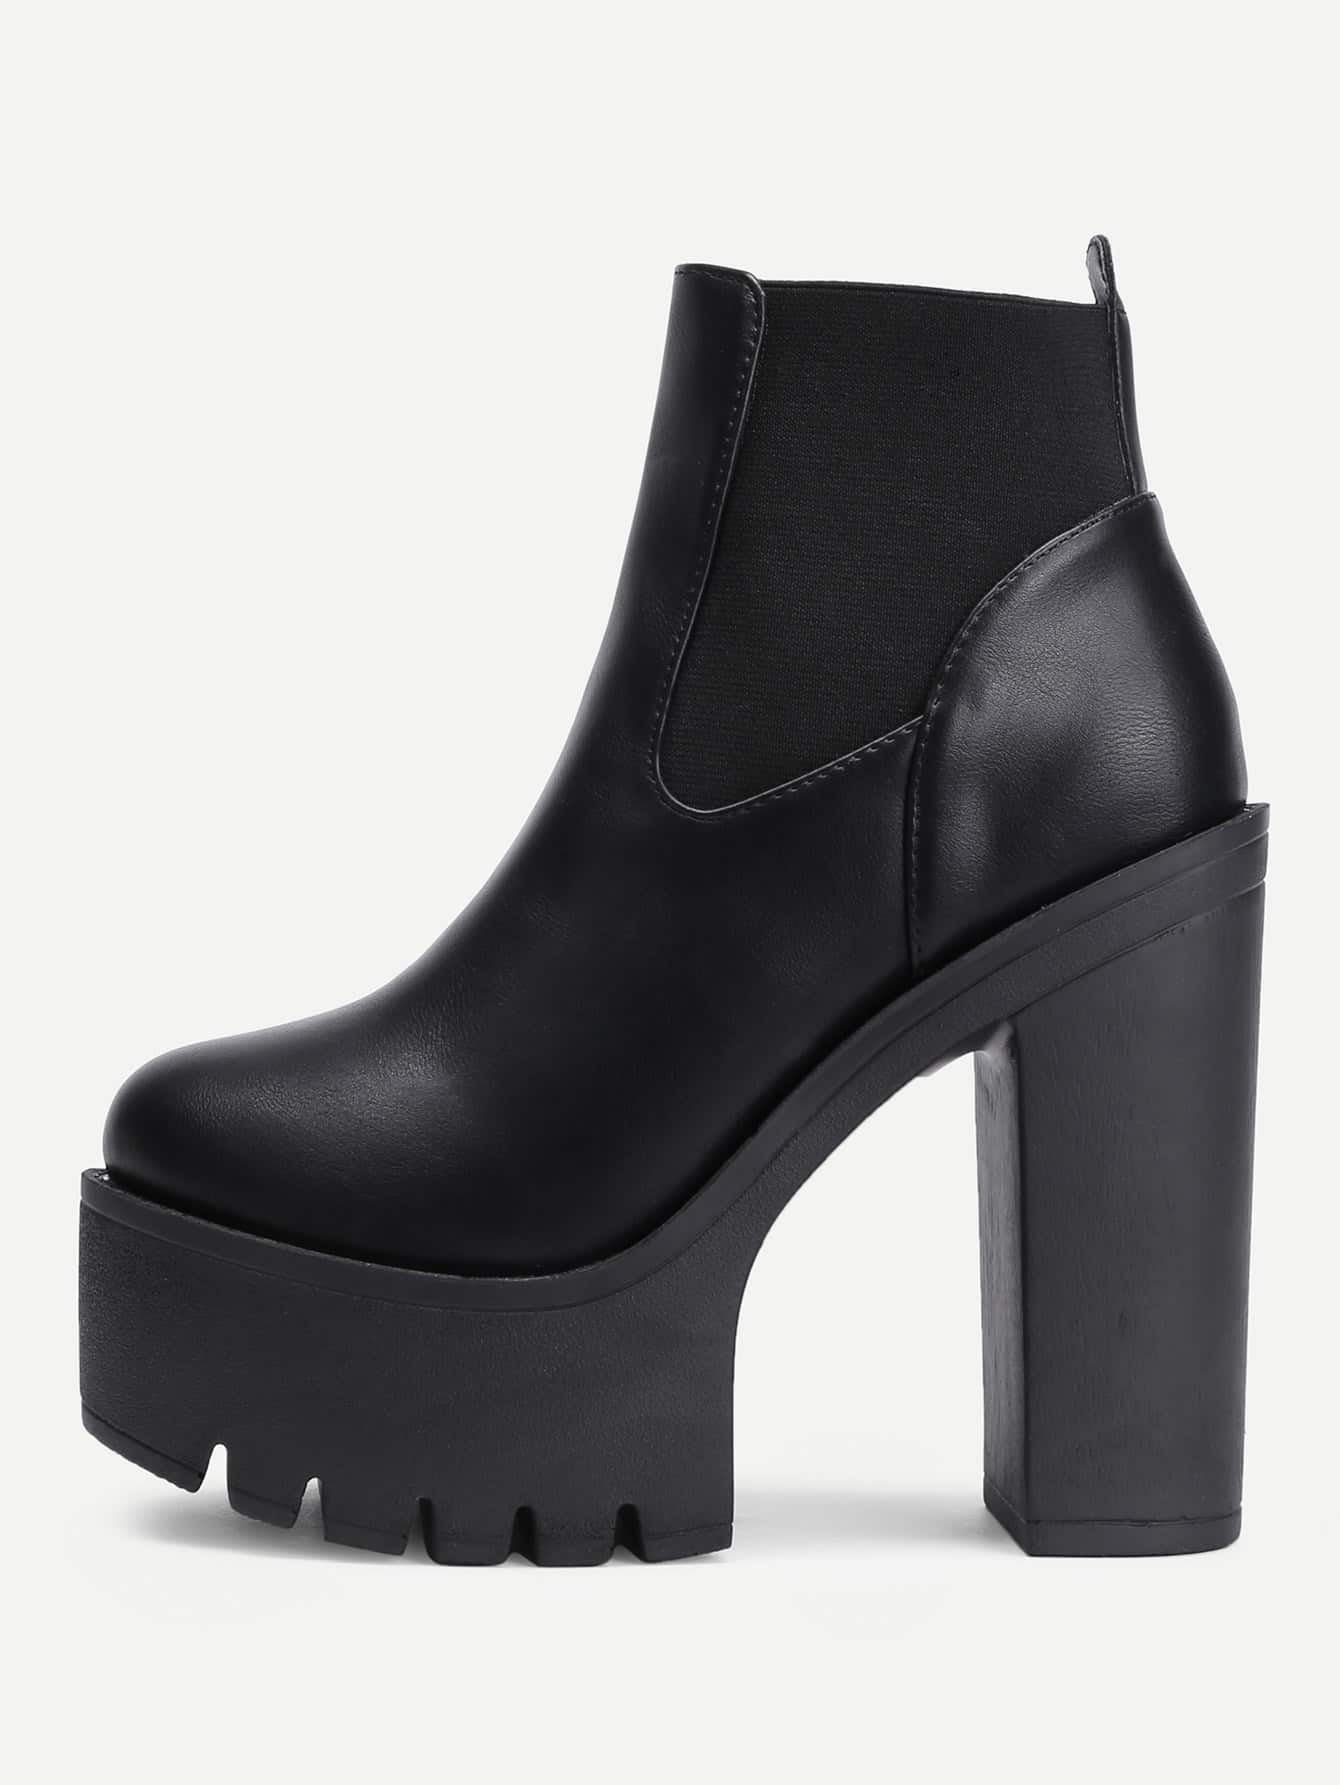 Round Toe Platform PU Ankle Boots lf80855 sexy round toe punk ring gothic club party platform stiletto ankle boots black